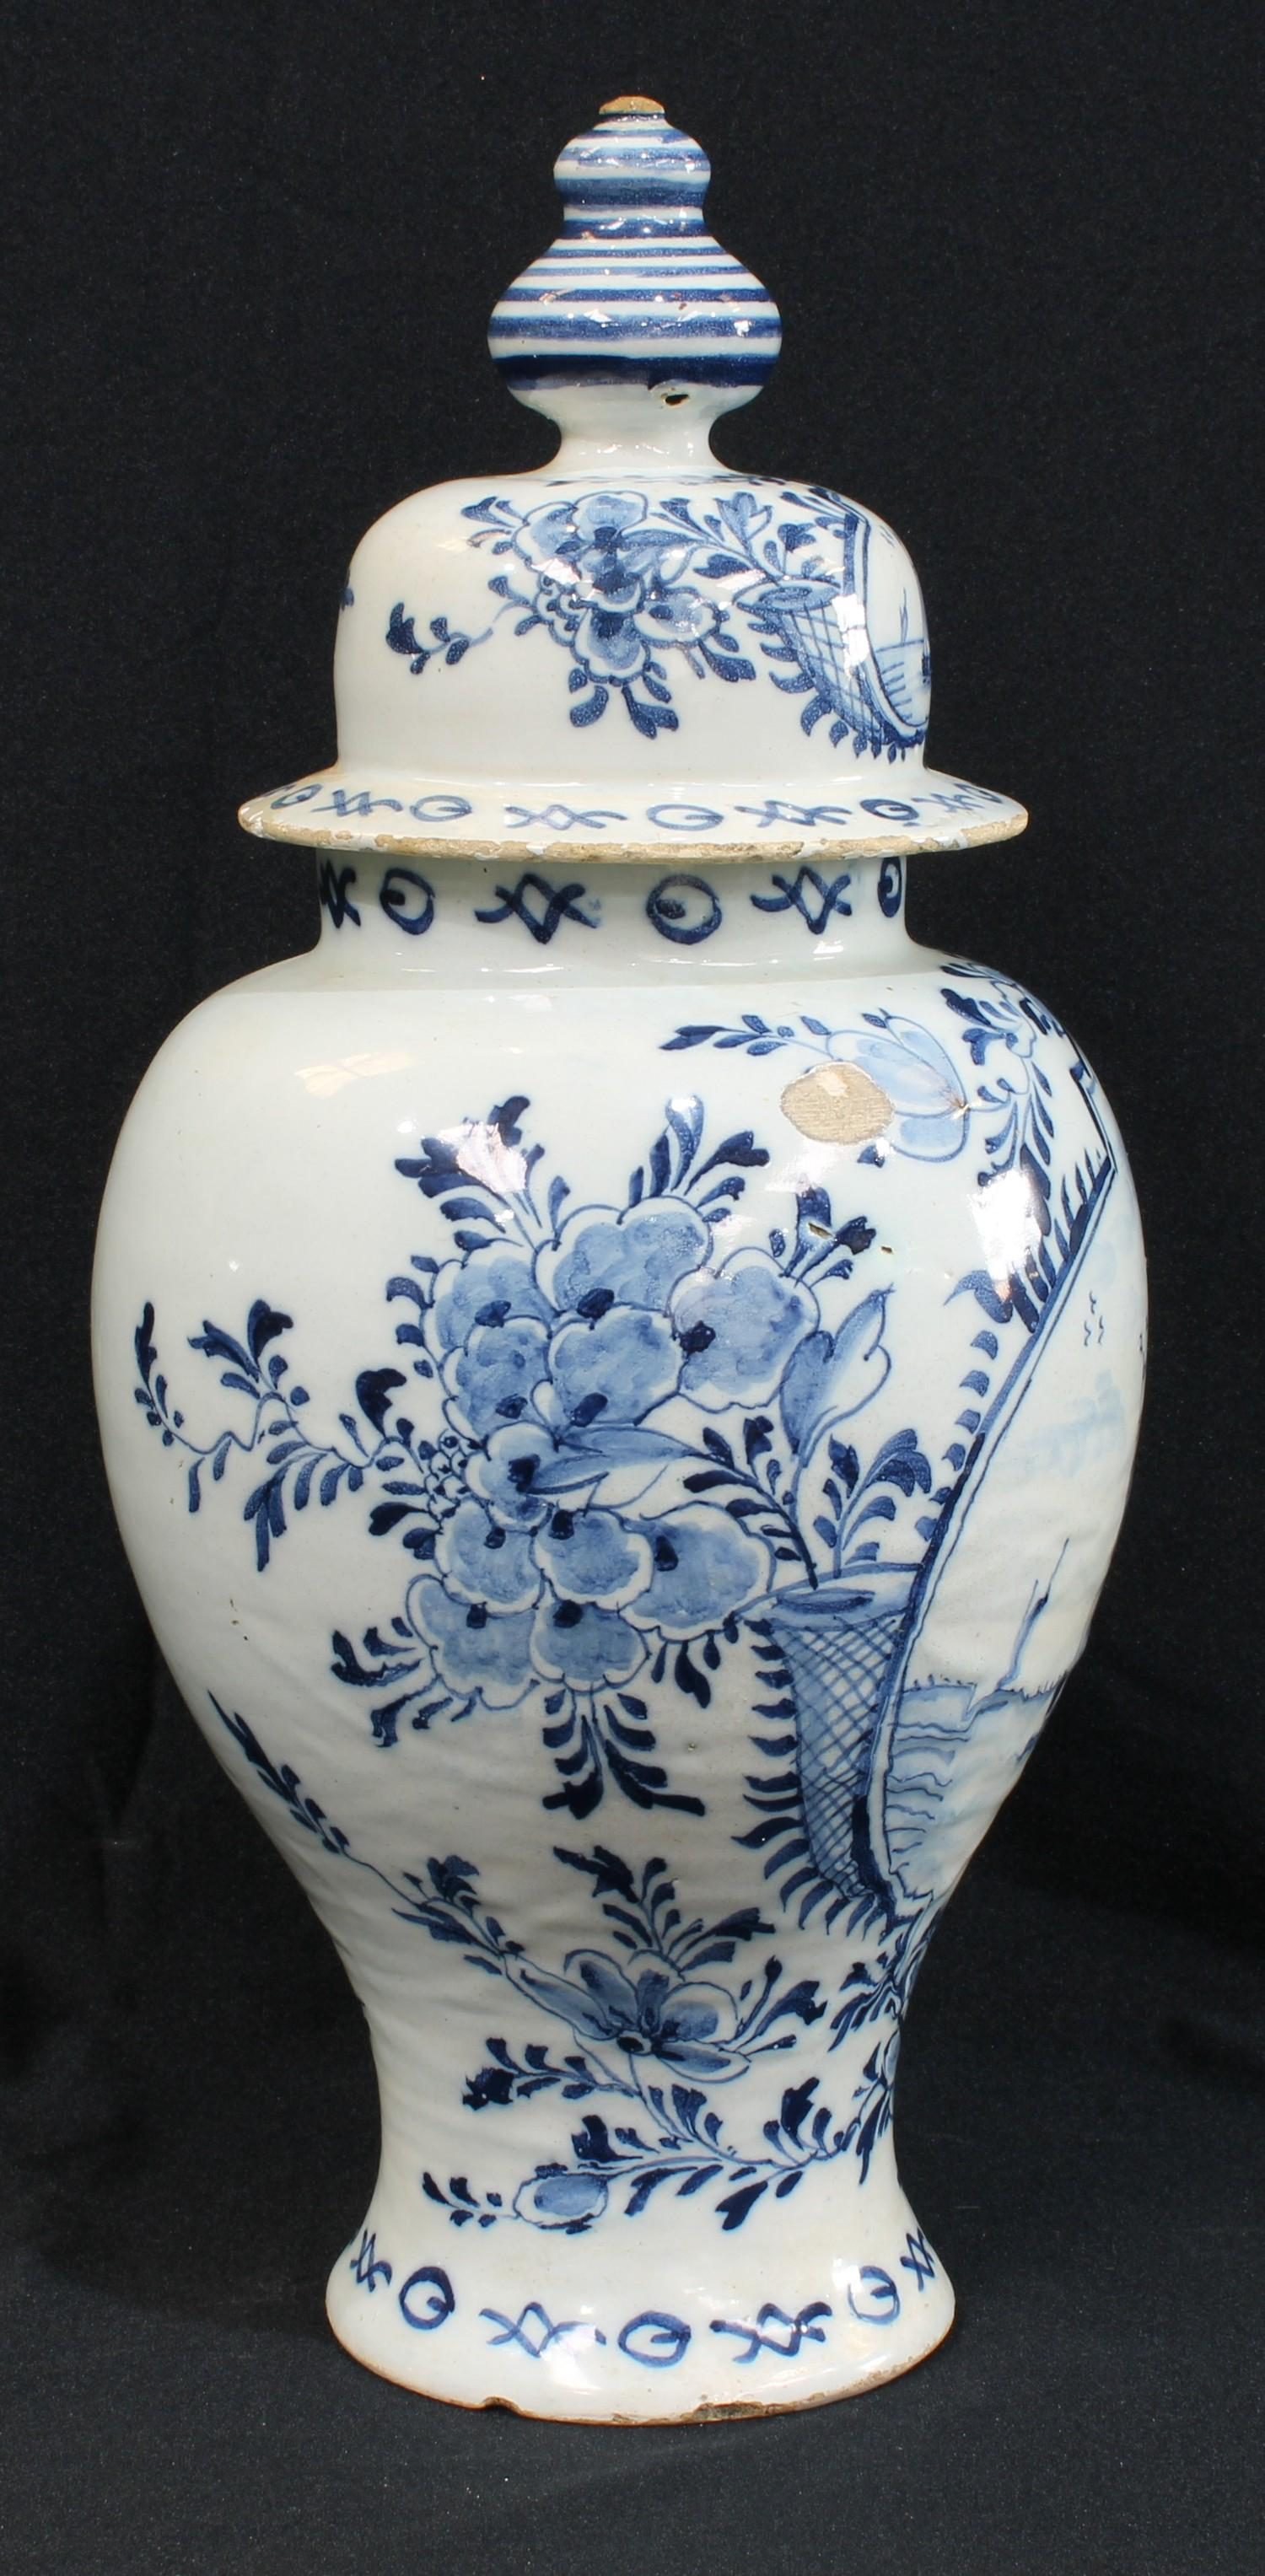 A late 18th century blue and white Delft vase and cover, painted with flowers, sailing boats and - Image 2 of 2